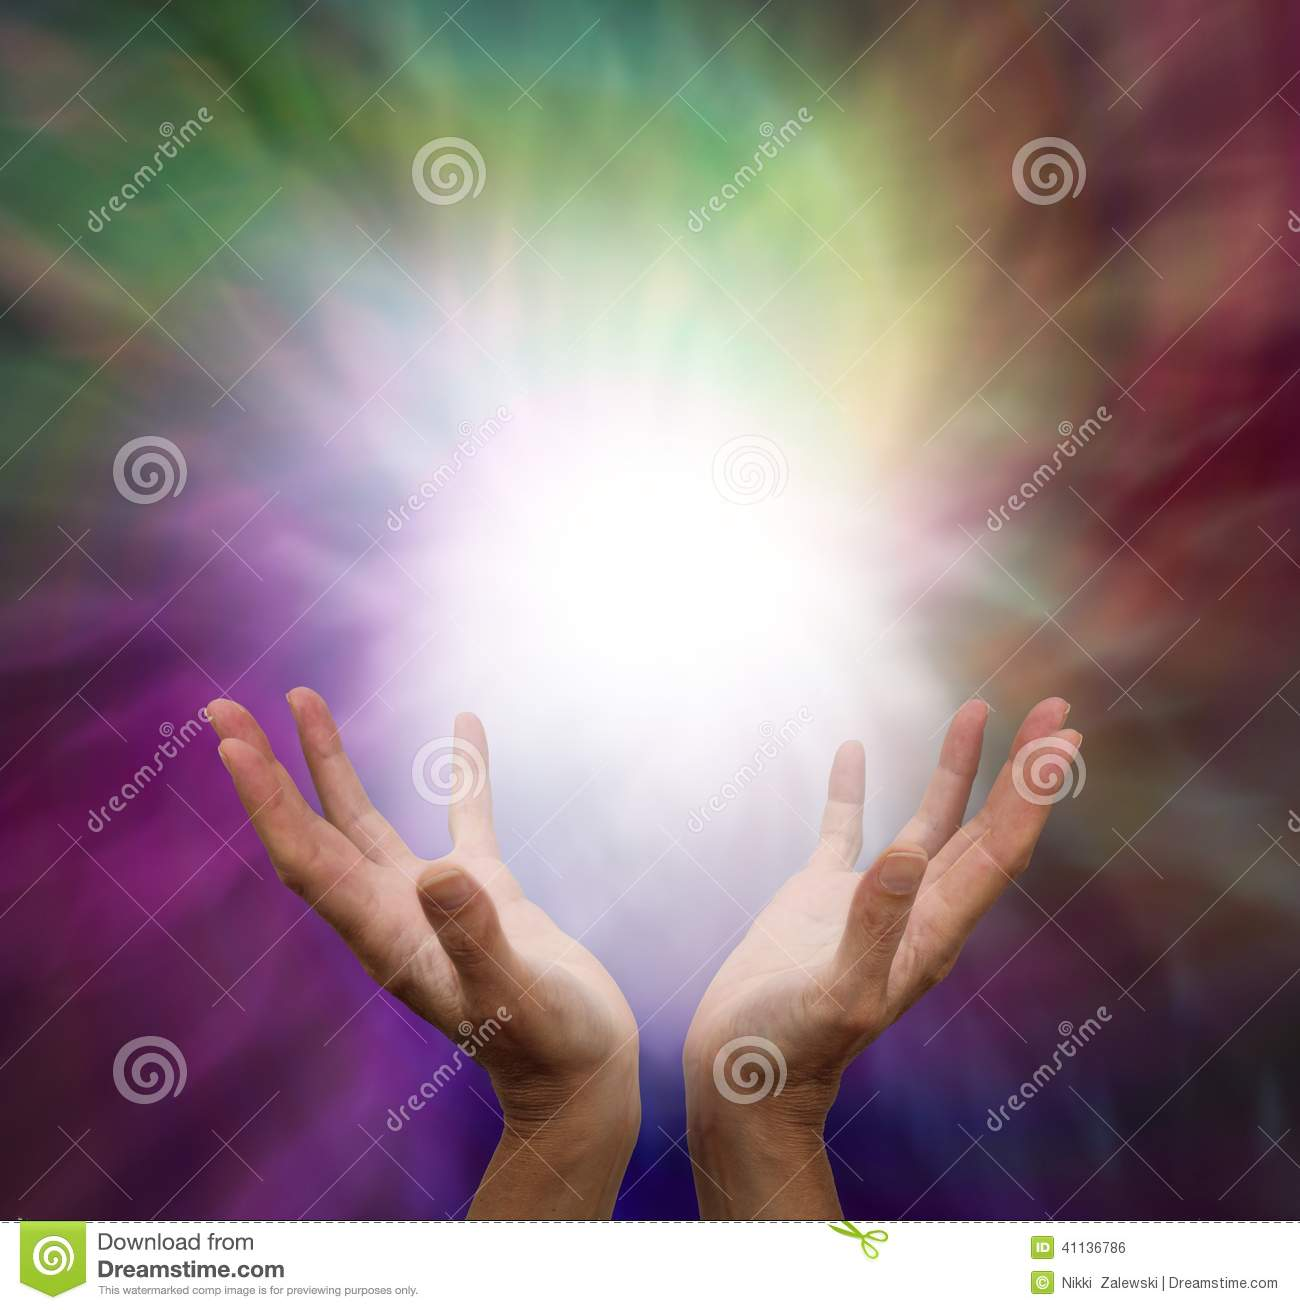 Healing hands and energy